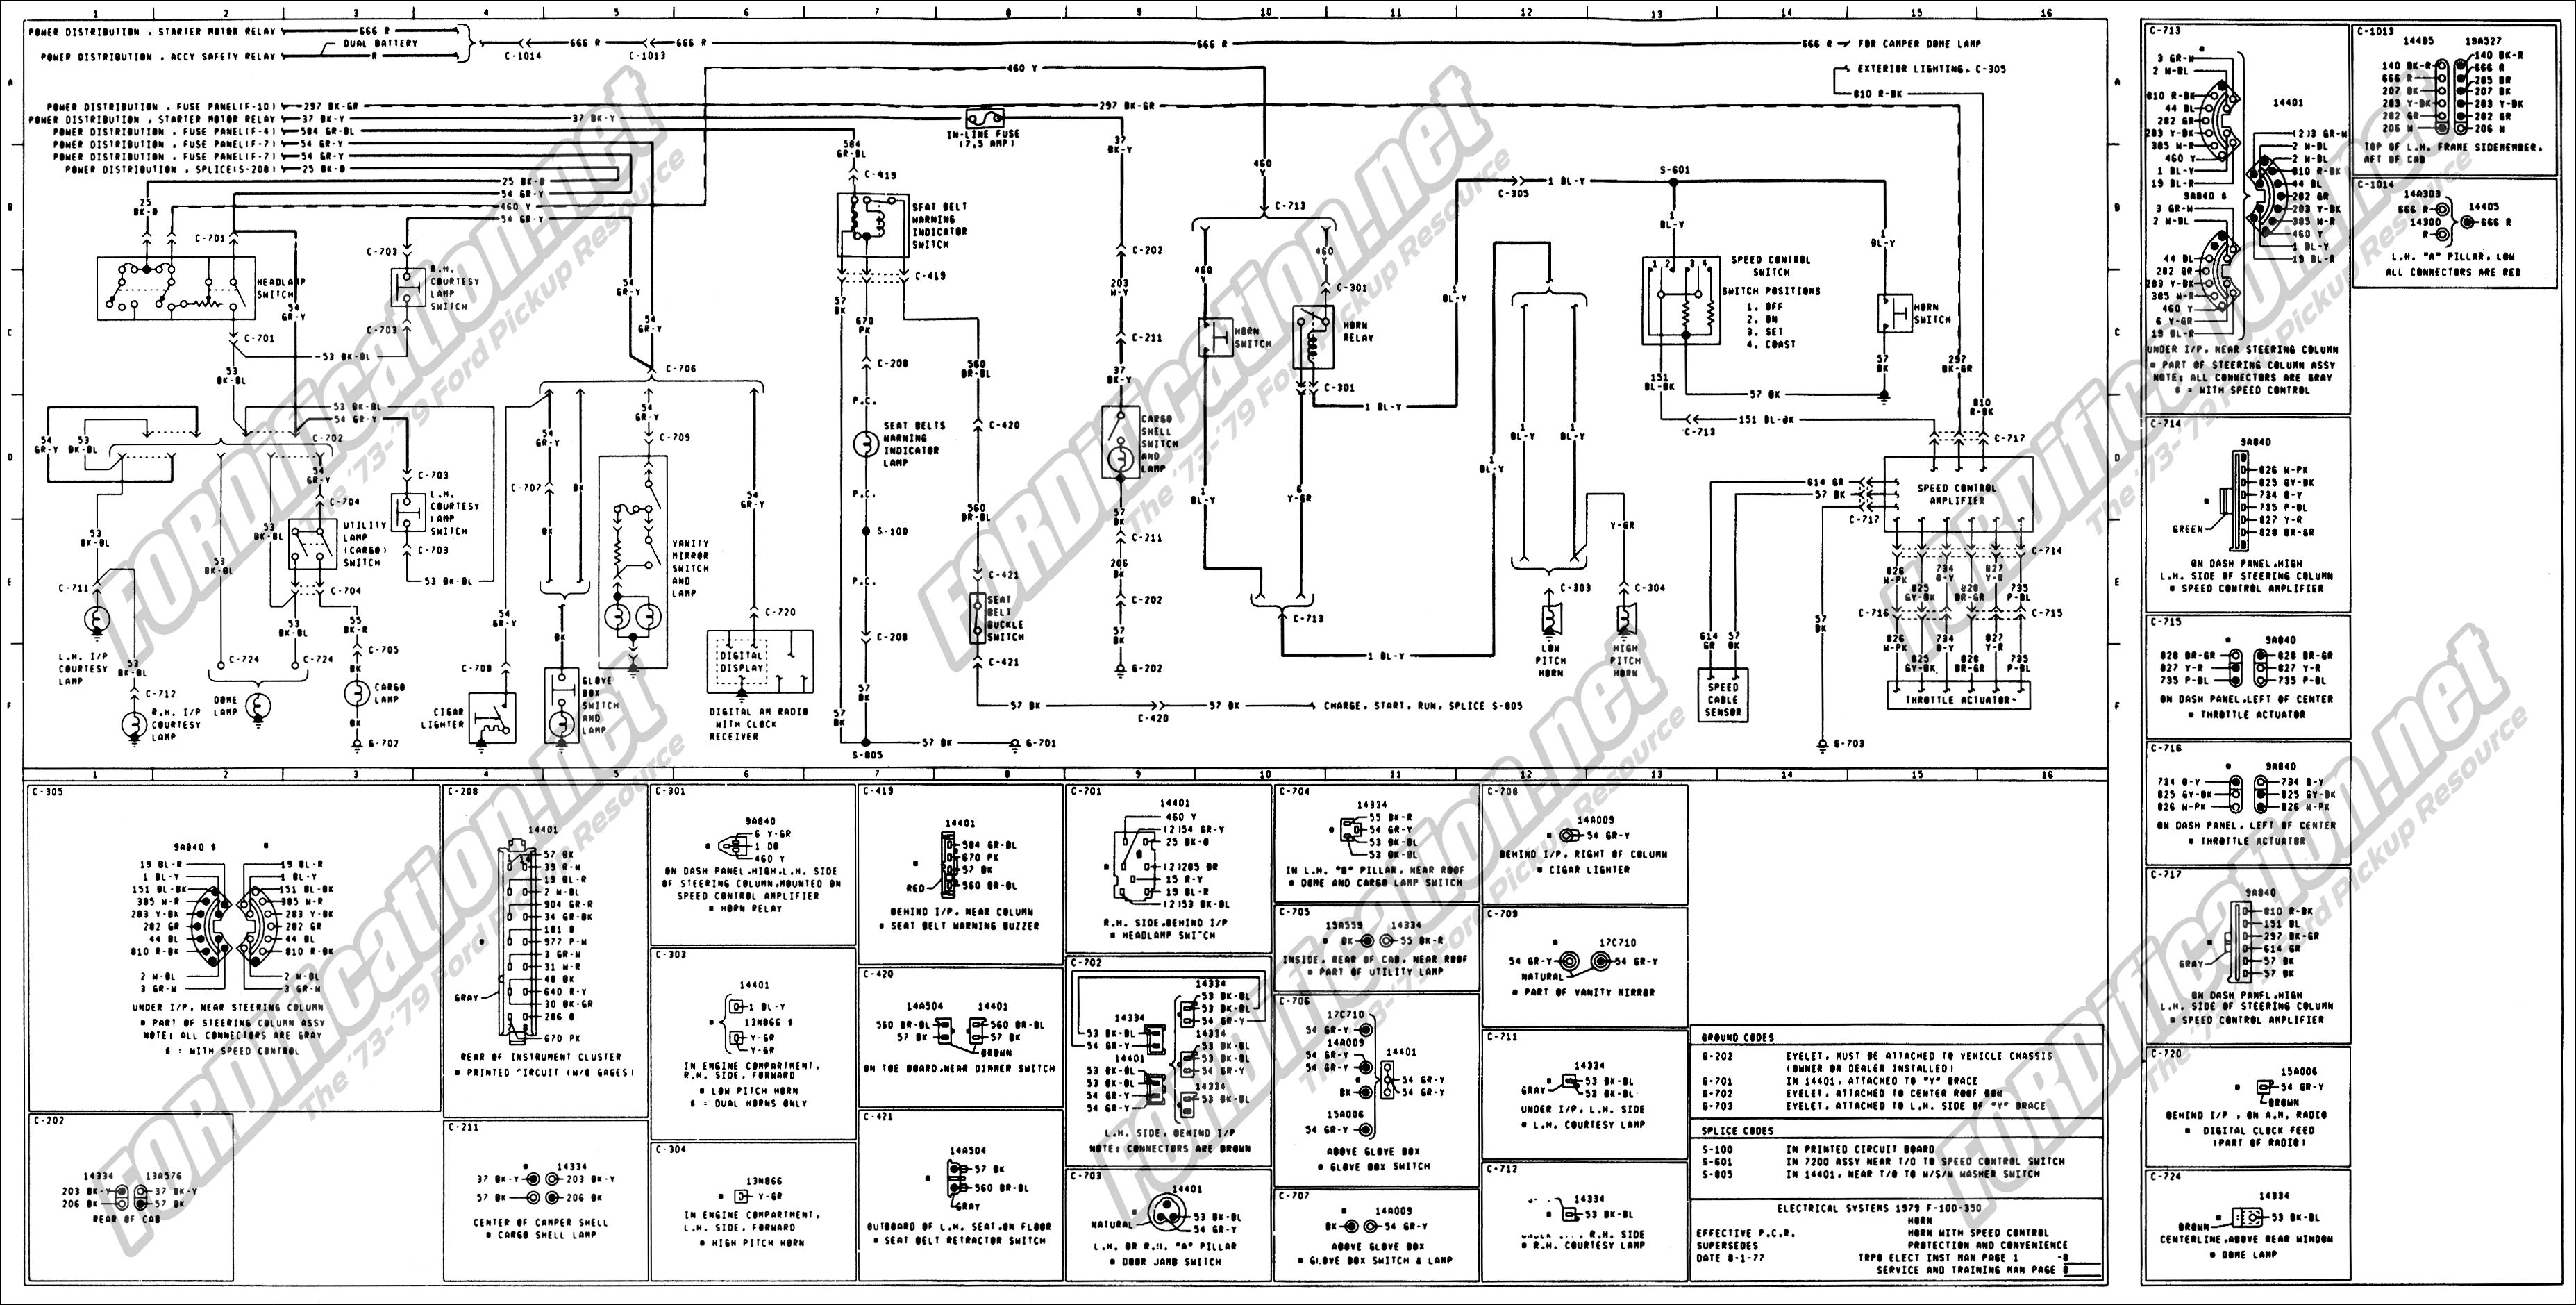 wiring_79master_8of9 1973 1979 ford truck wiring diagrams & schematics fordification net 2008 ford f250 wiring diagram at bayanpartner.co